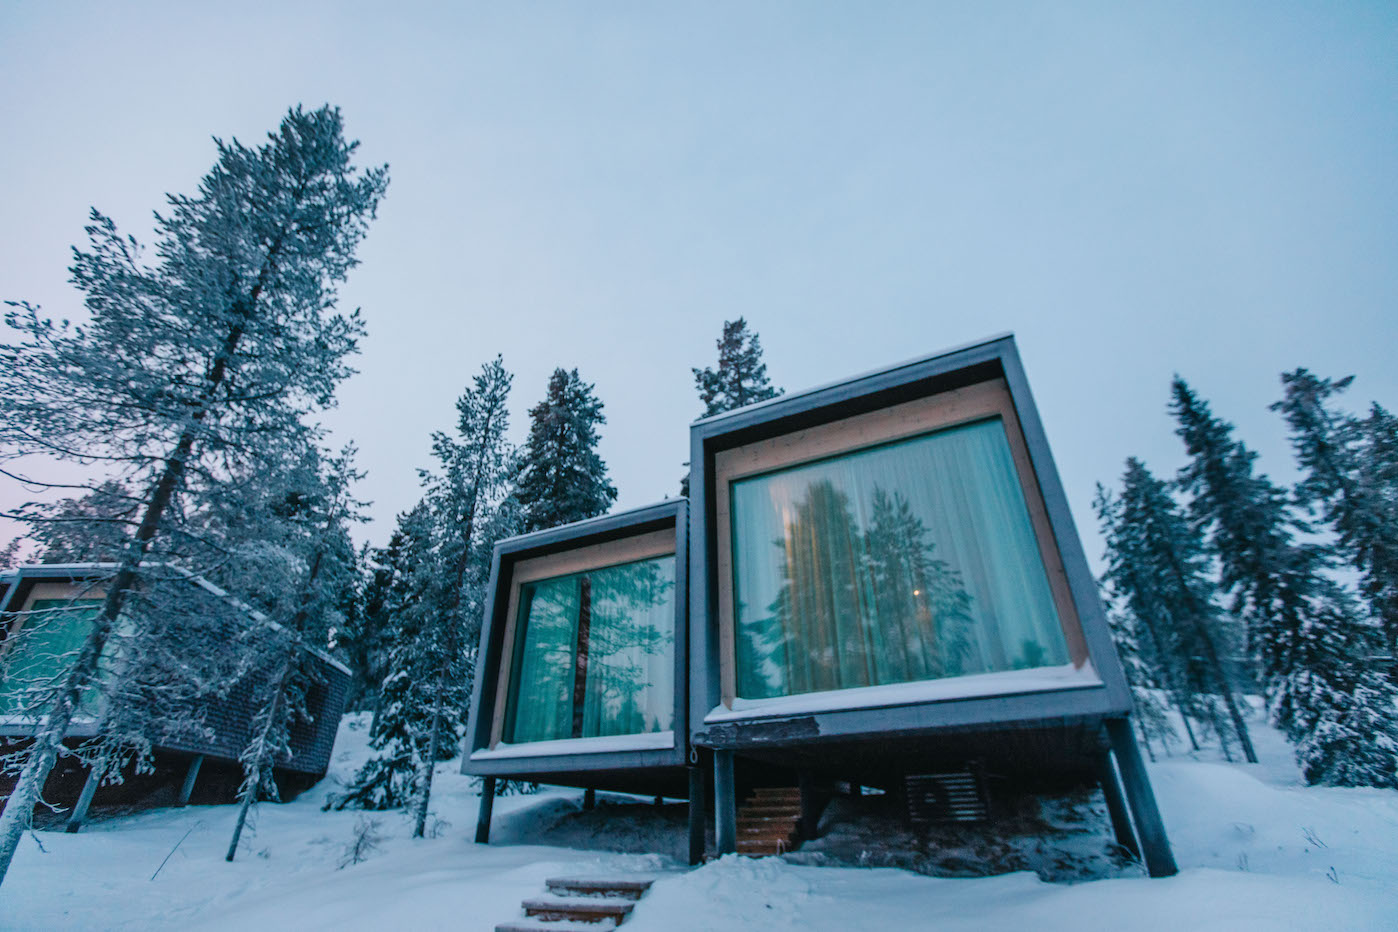 arctic treehouse, finland, arctic treehouse hotel, lapland, santa village, northern lights